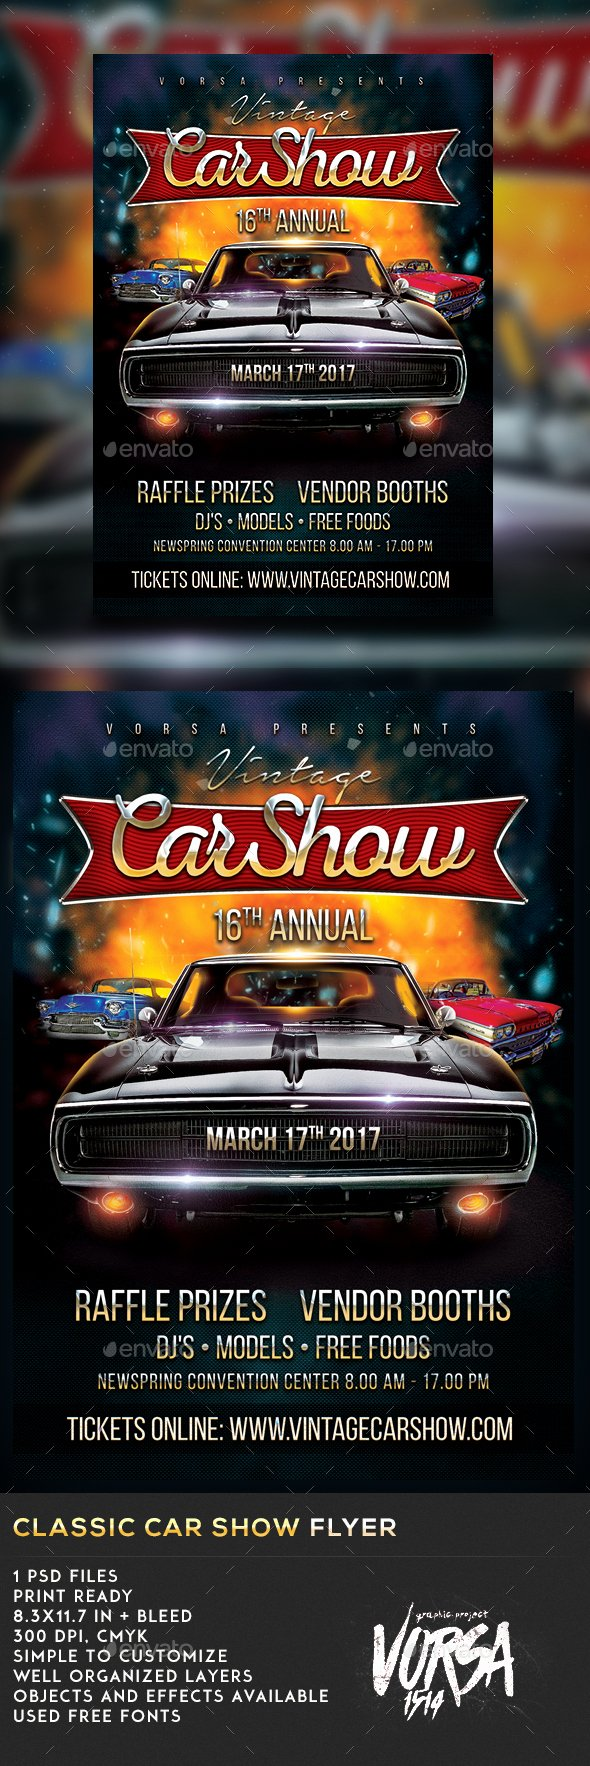 Classic Car Show Flyer by Vorsa